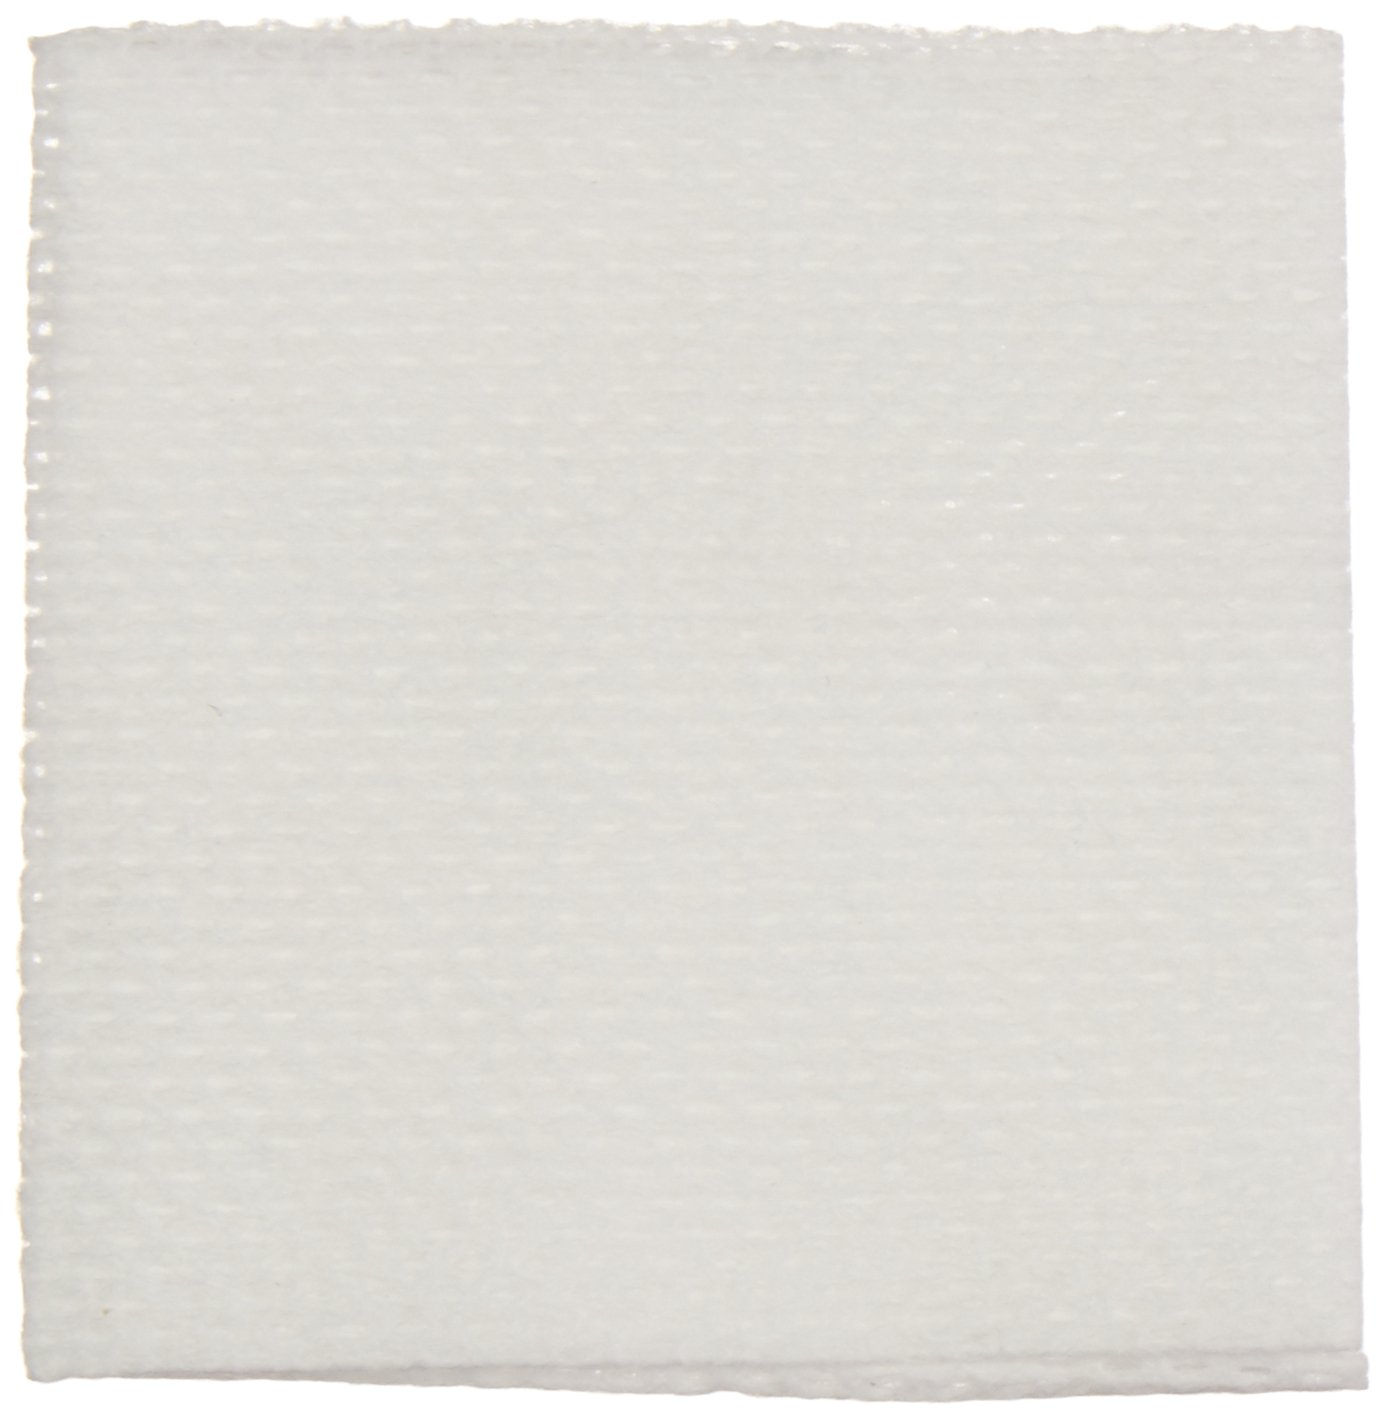 Dukal 900300 Esthetic Wipes, Non-Sterile, 4'' x 4'', 4-Ply (Pack of 4000) by Dukal